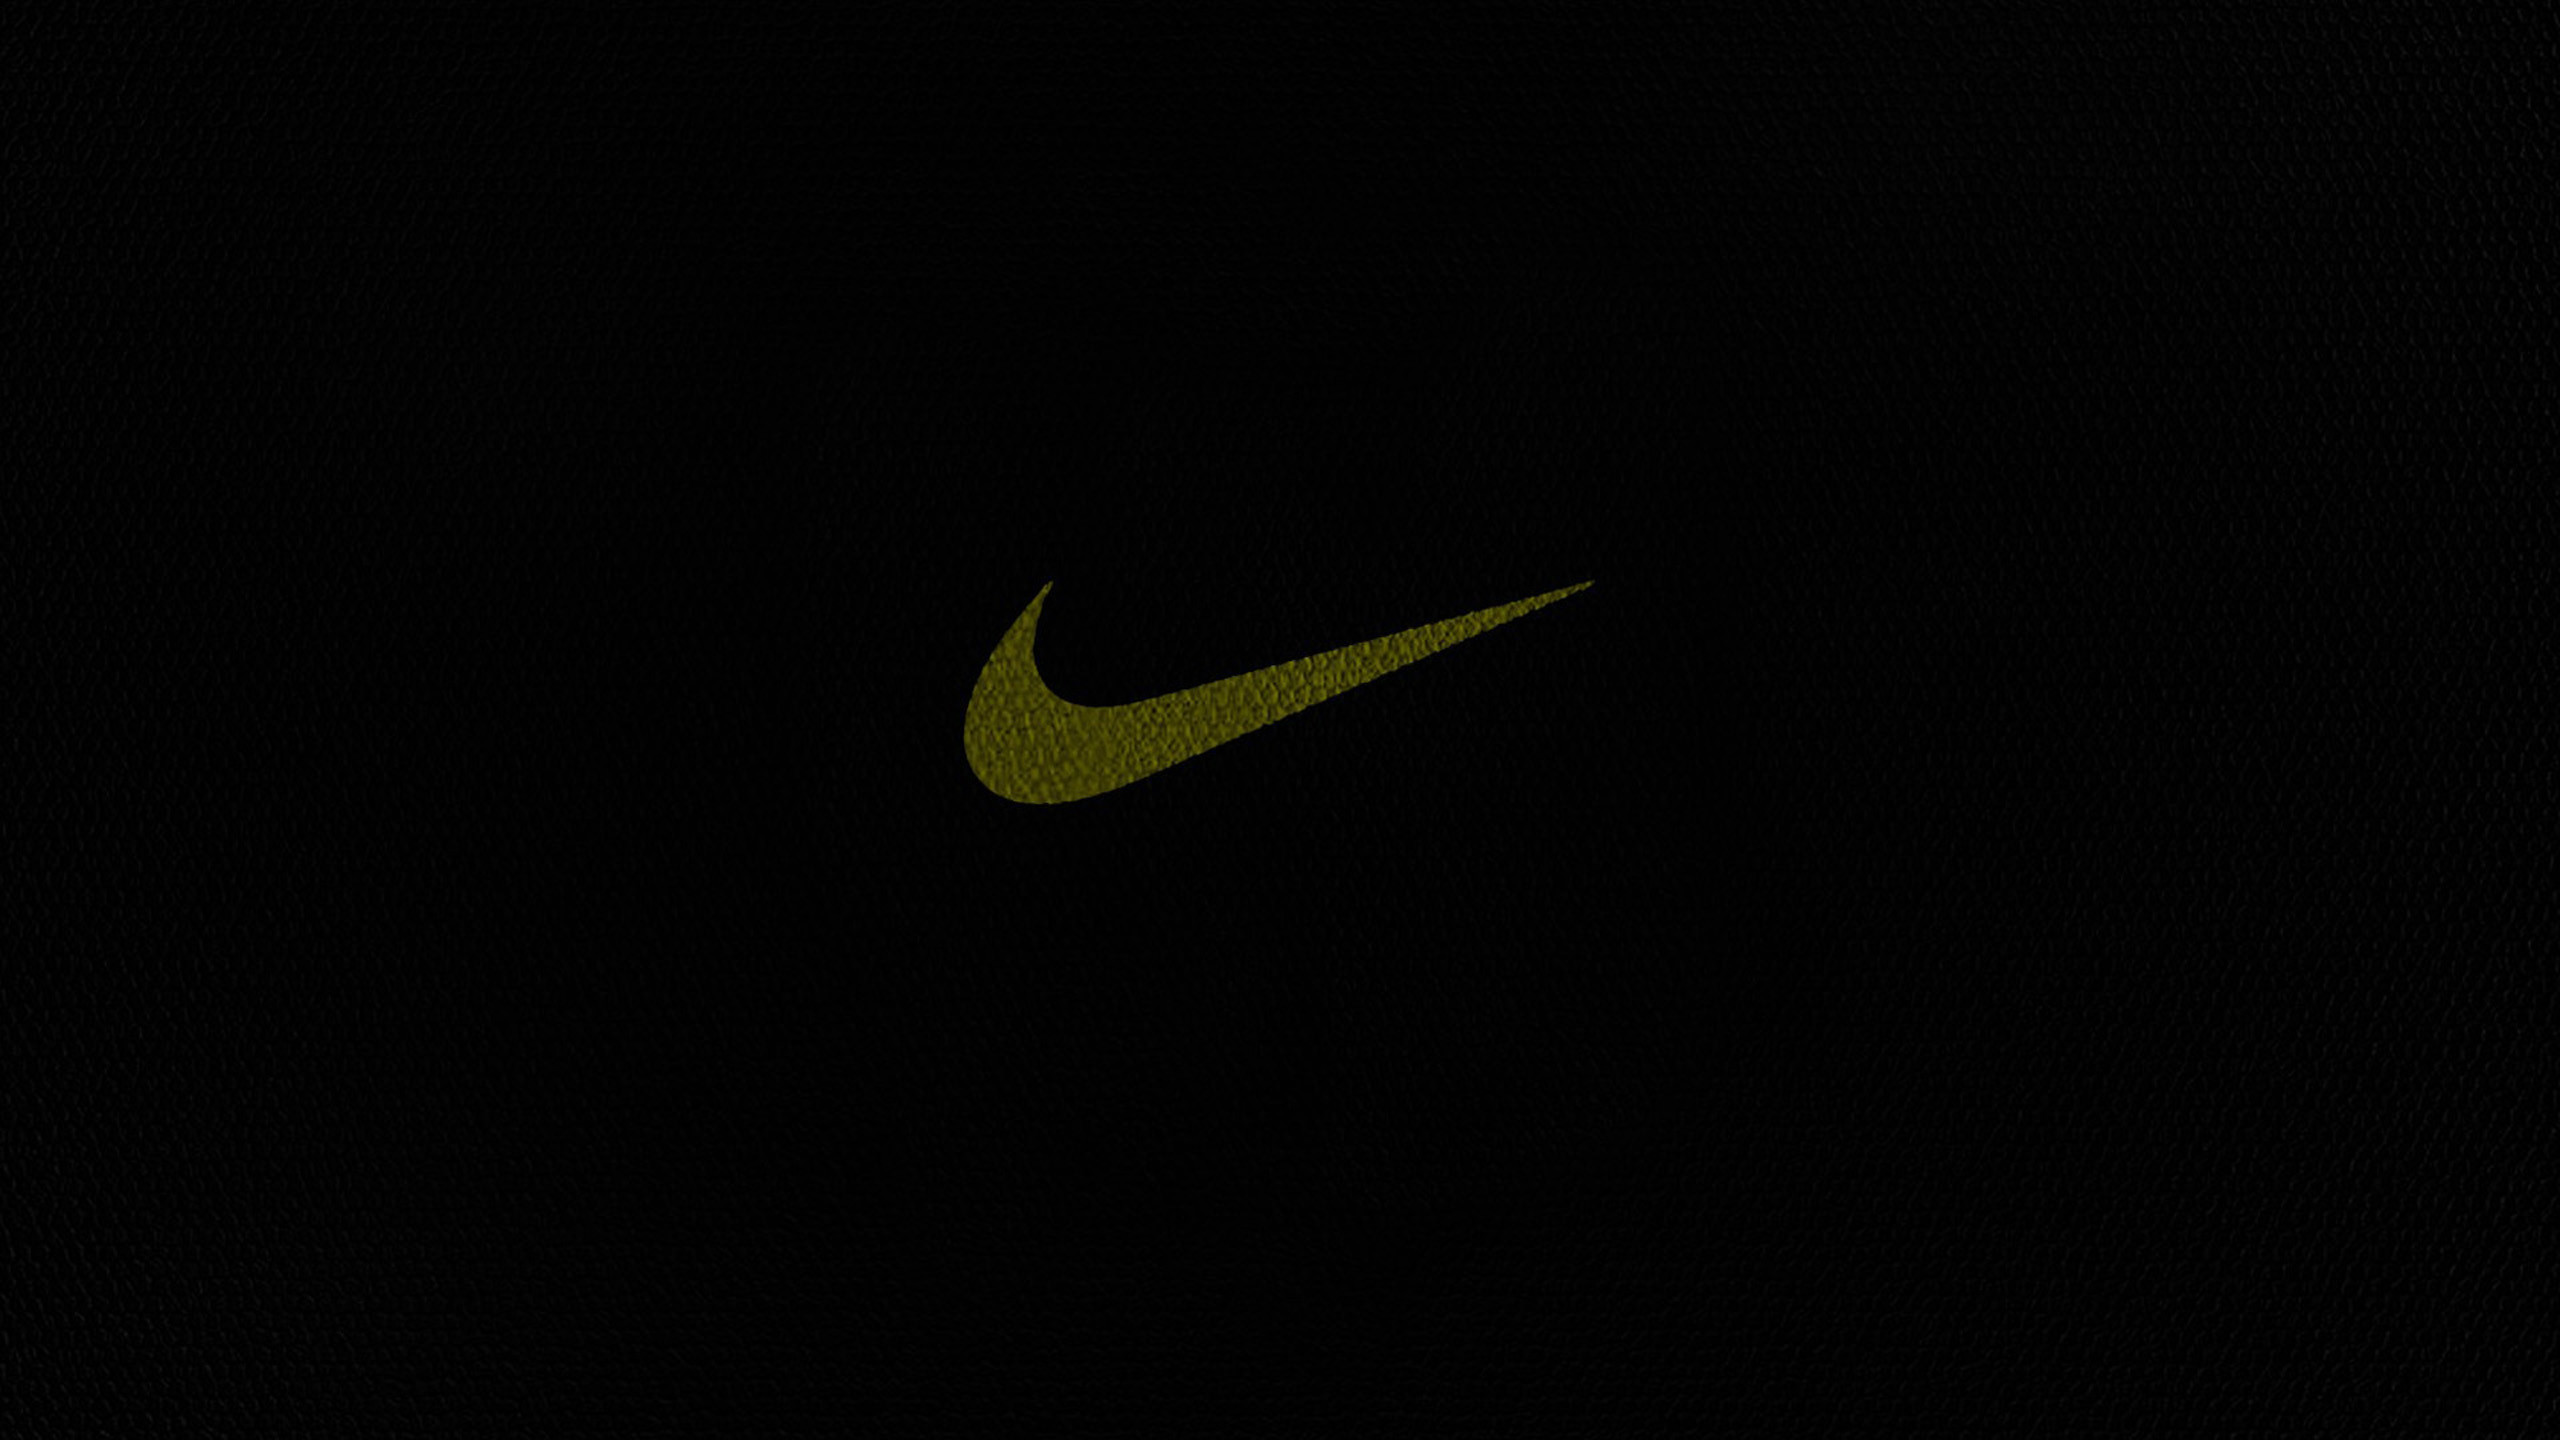 1080x1920 Awesome IPhone Nike HD Images Collection: IPhone Nike HD Wallpapers